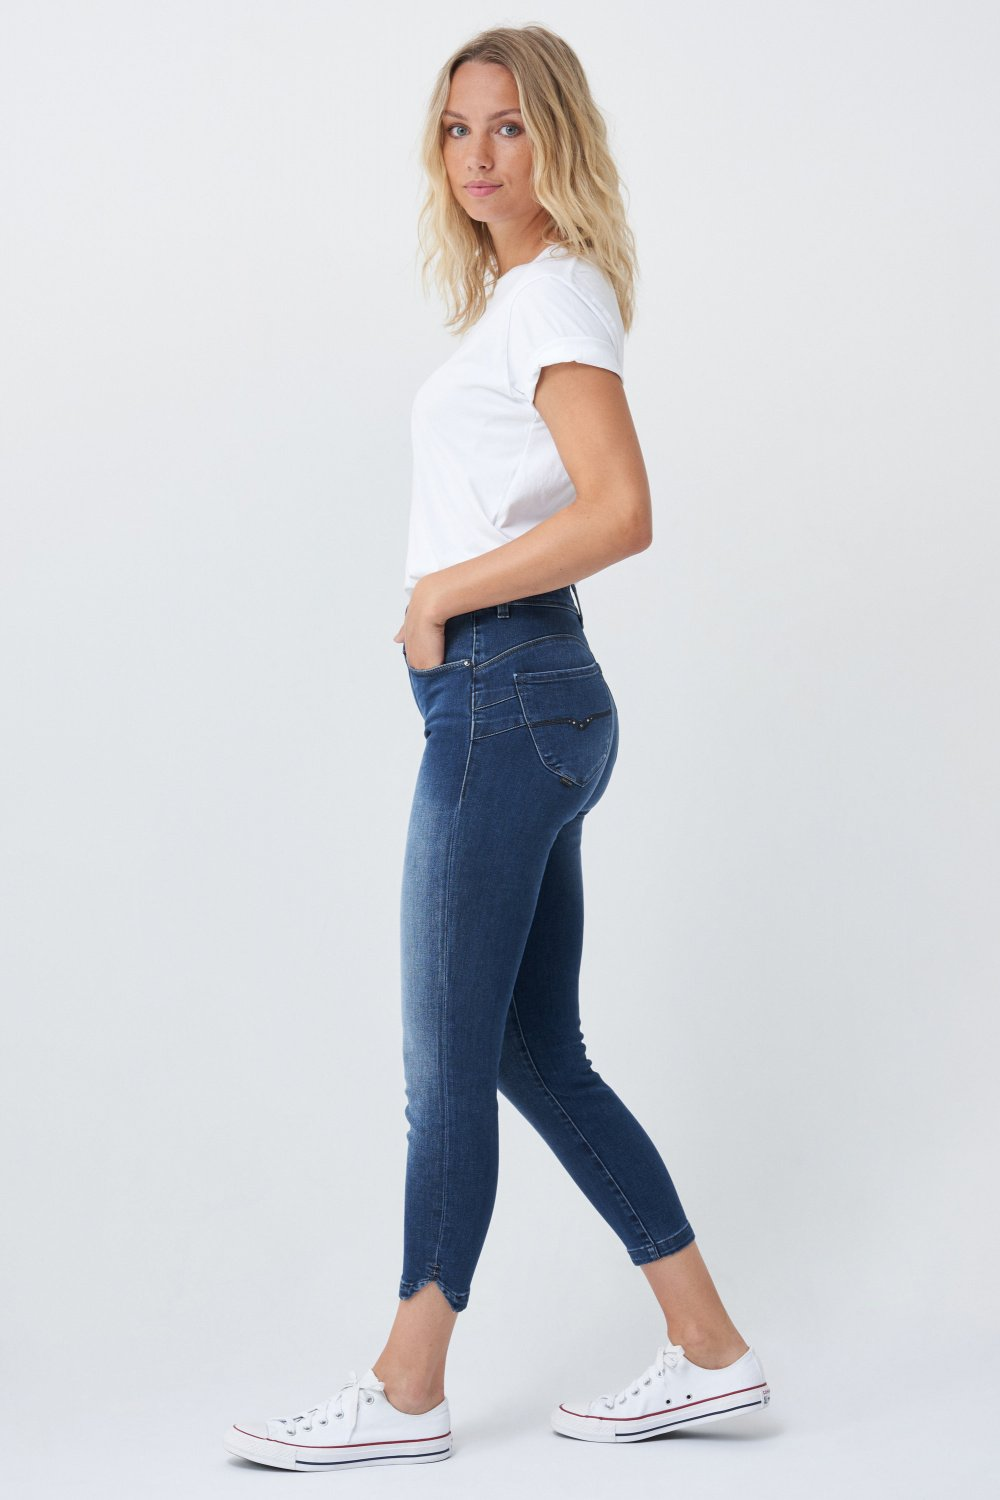 Push In Secret capri jeans with embroidered details - Salsa